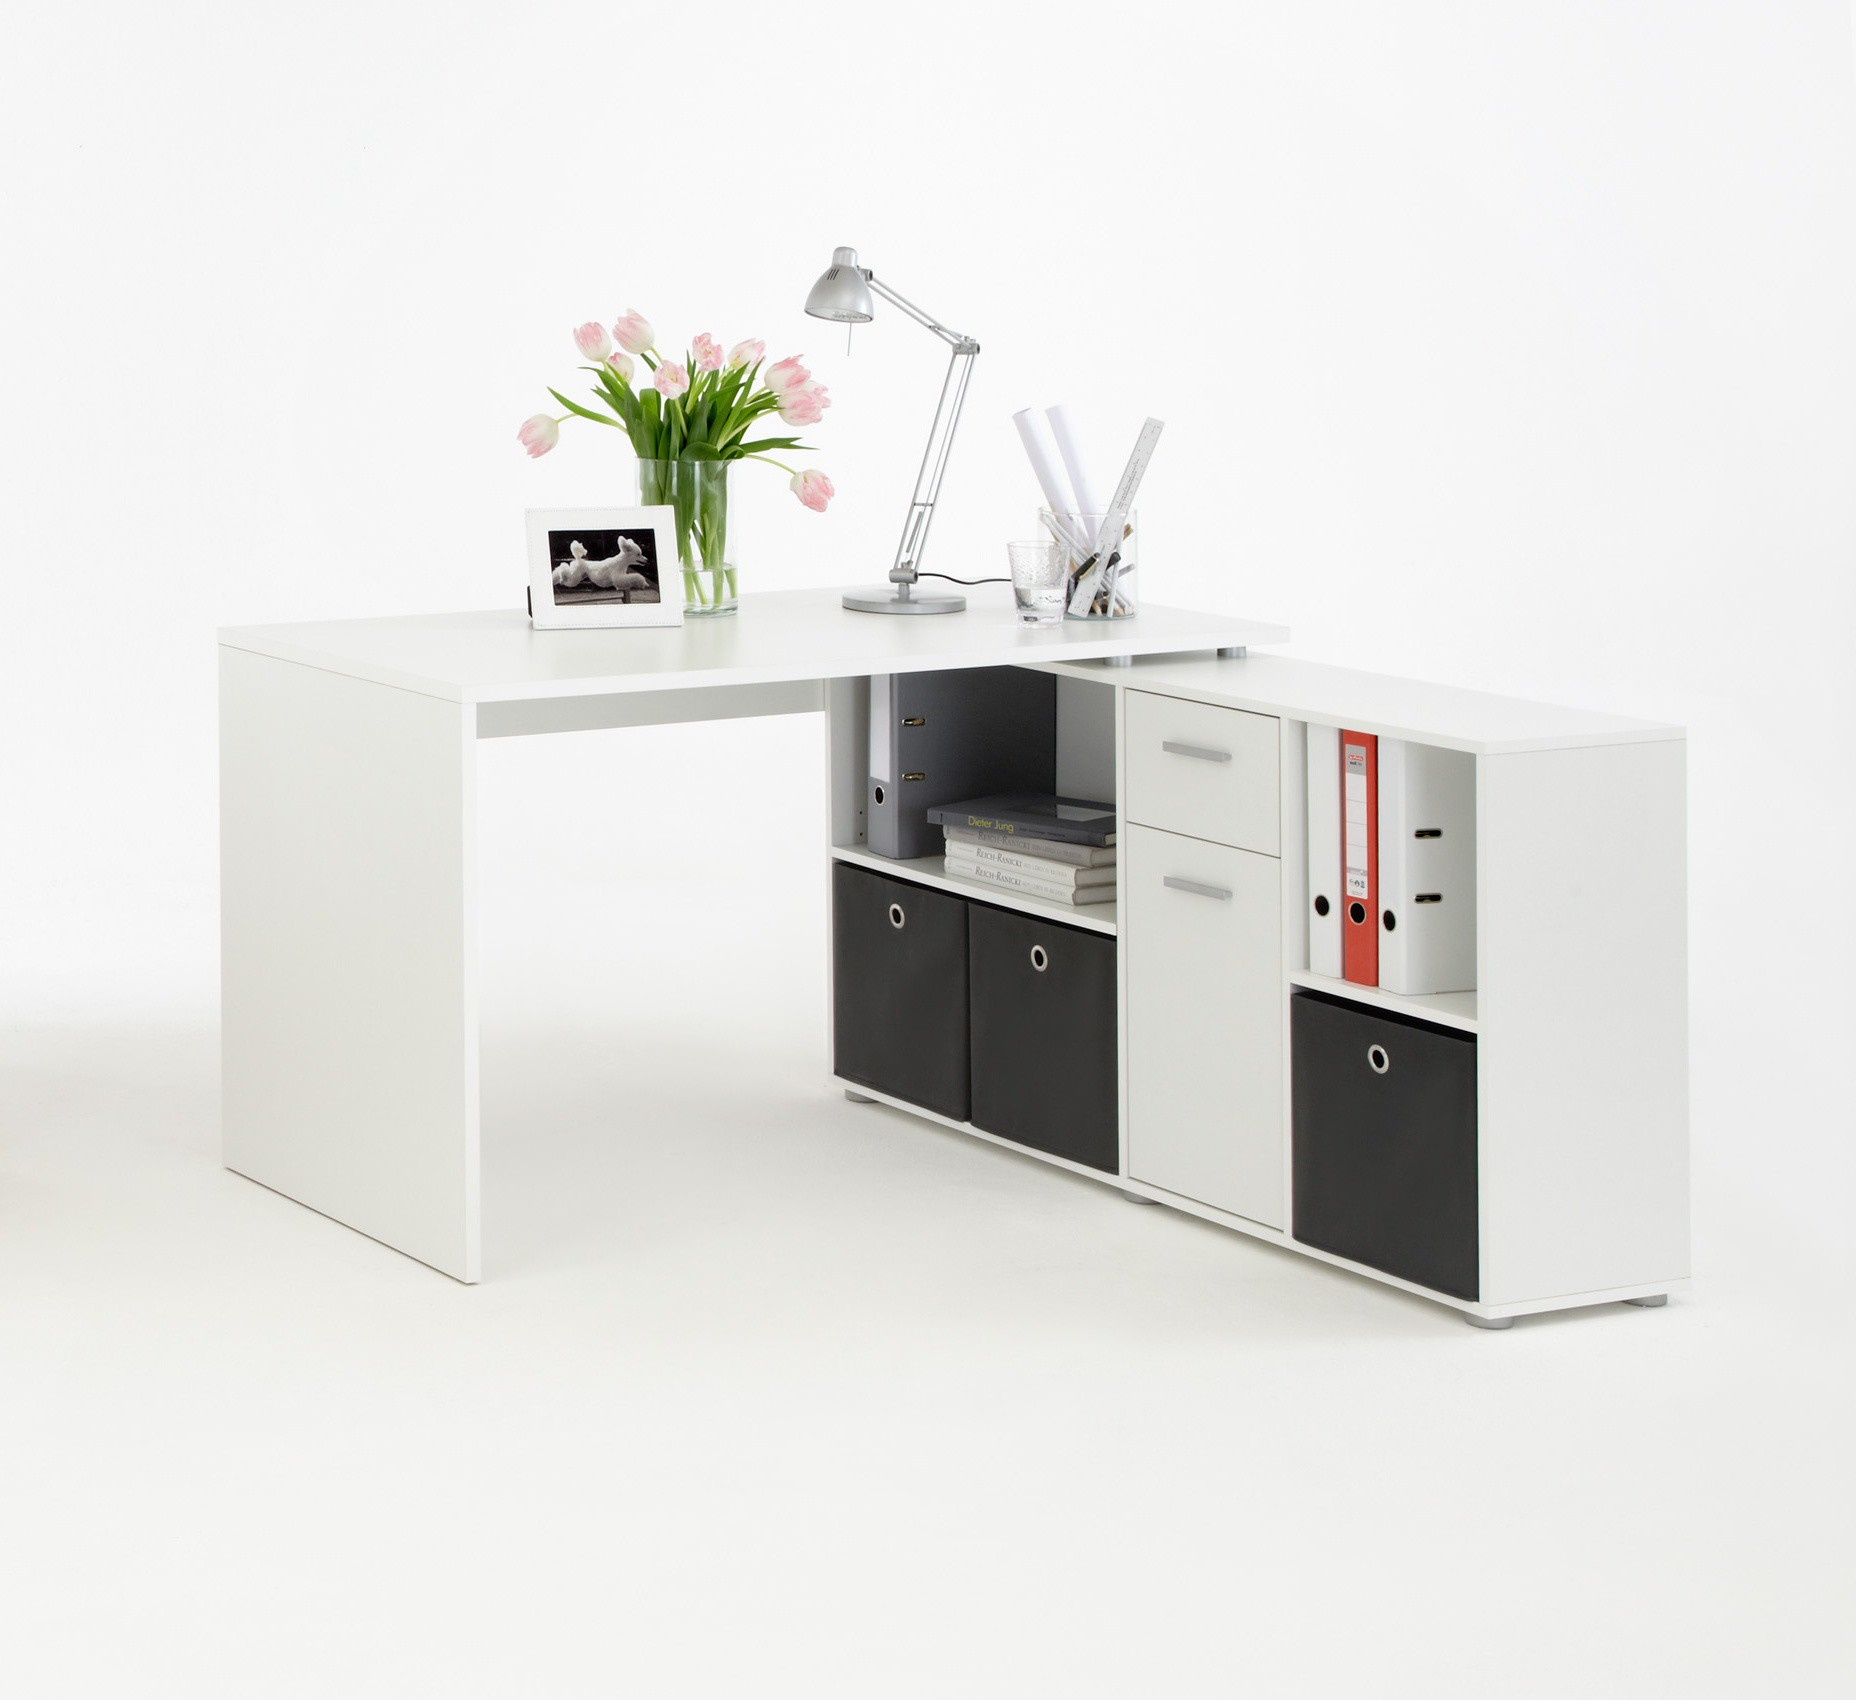 bureau d 39 angle blanc pour am nager comme il se doit le local de travail mon bureau d 39 angle. Black Bedroom Furniture Sets. Home Design Ideas